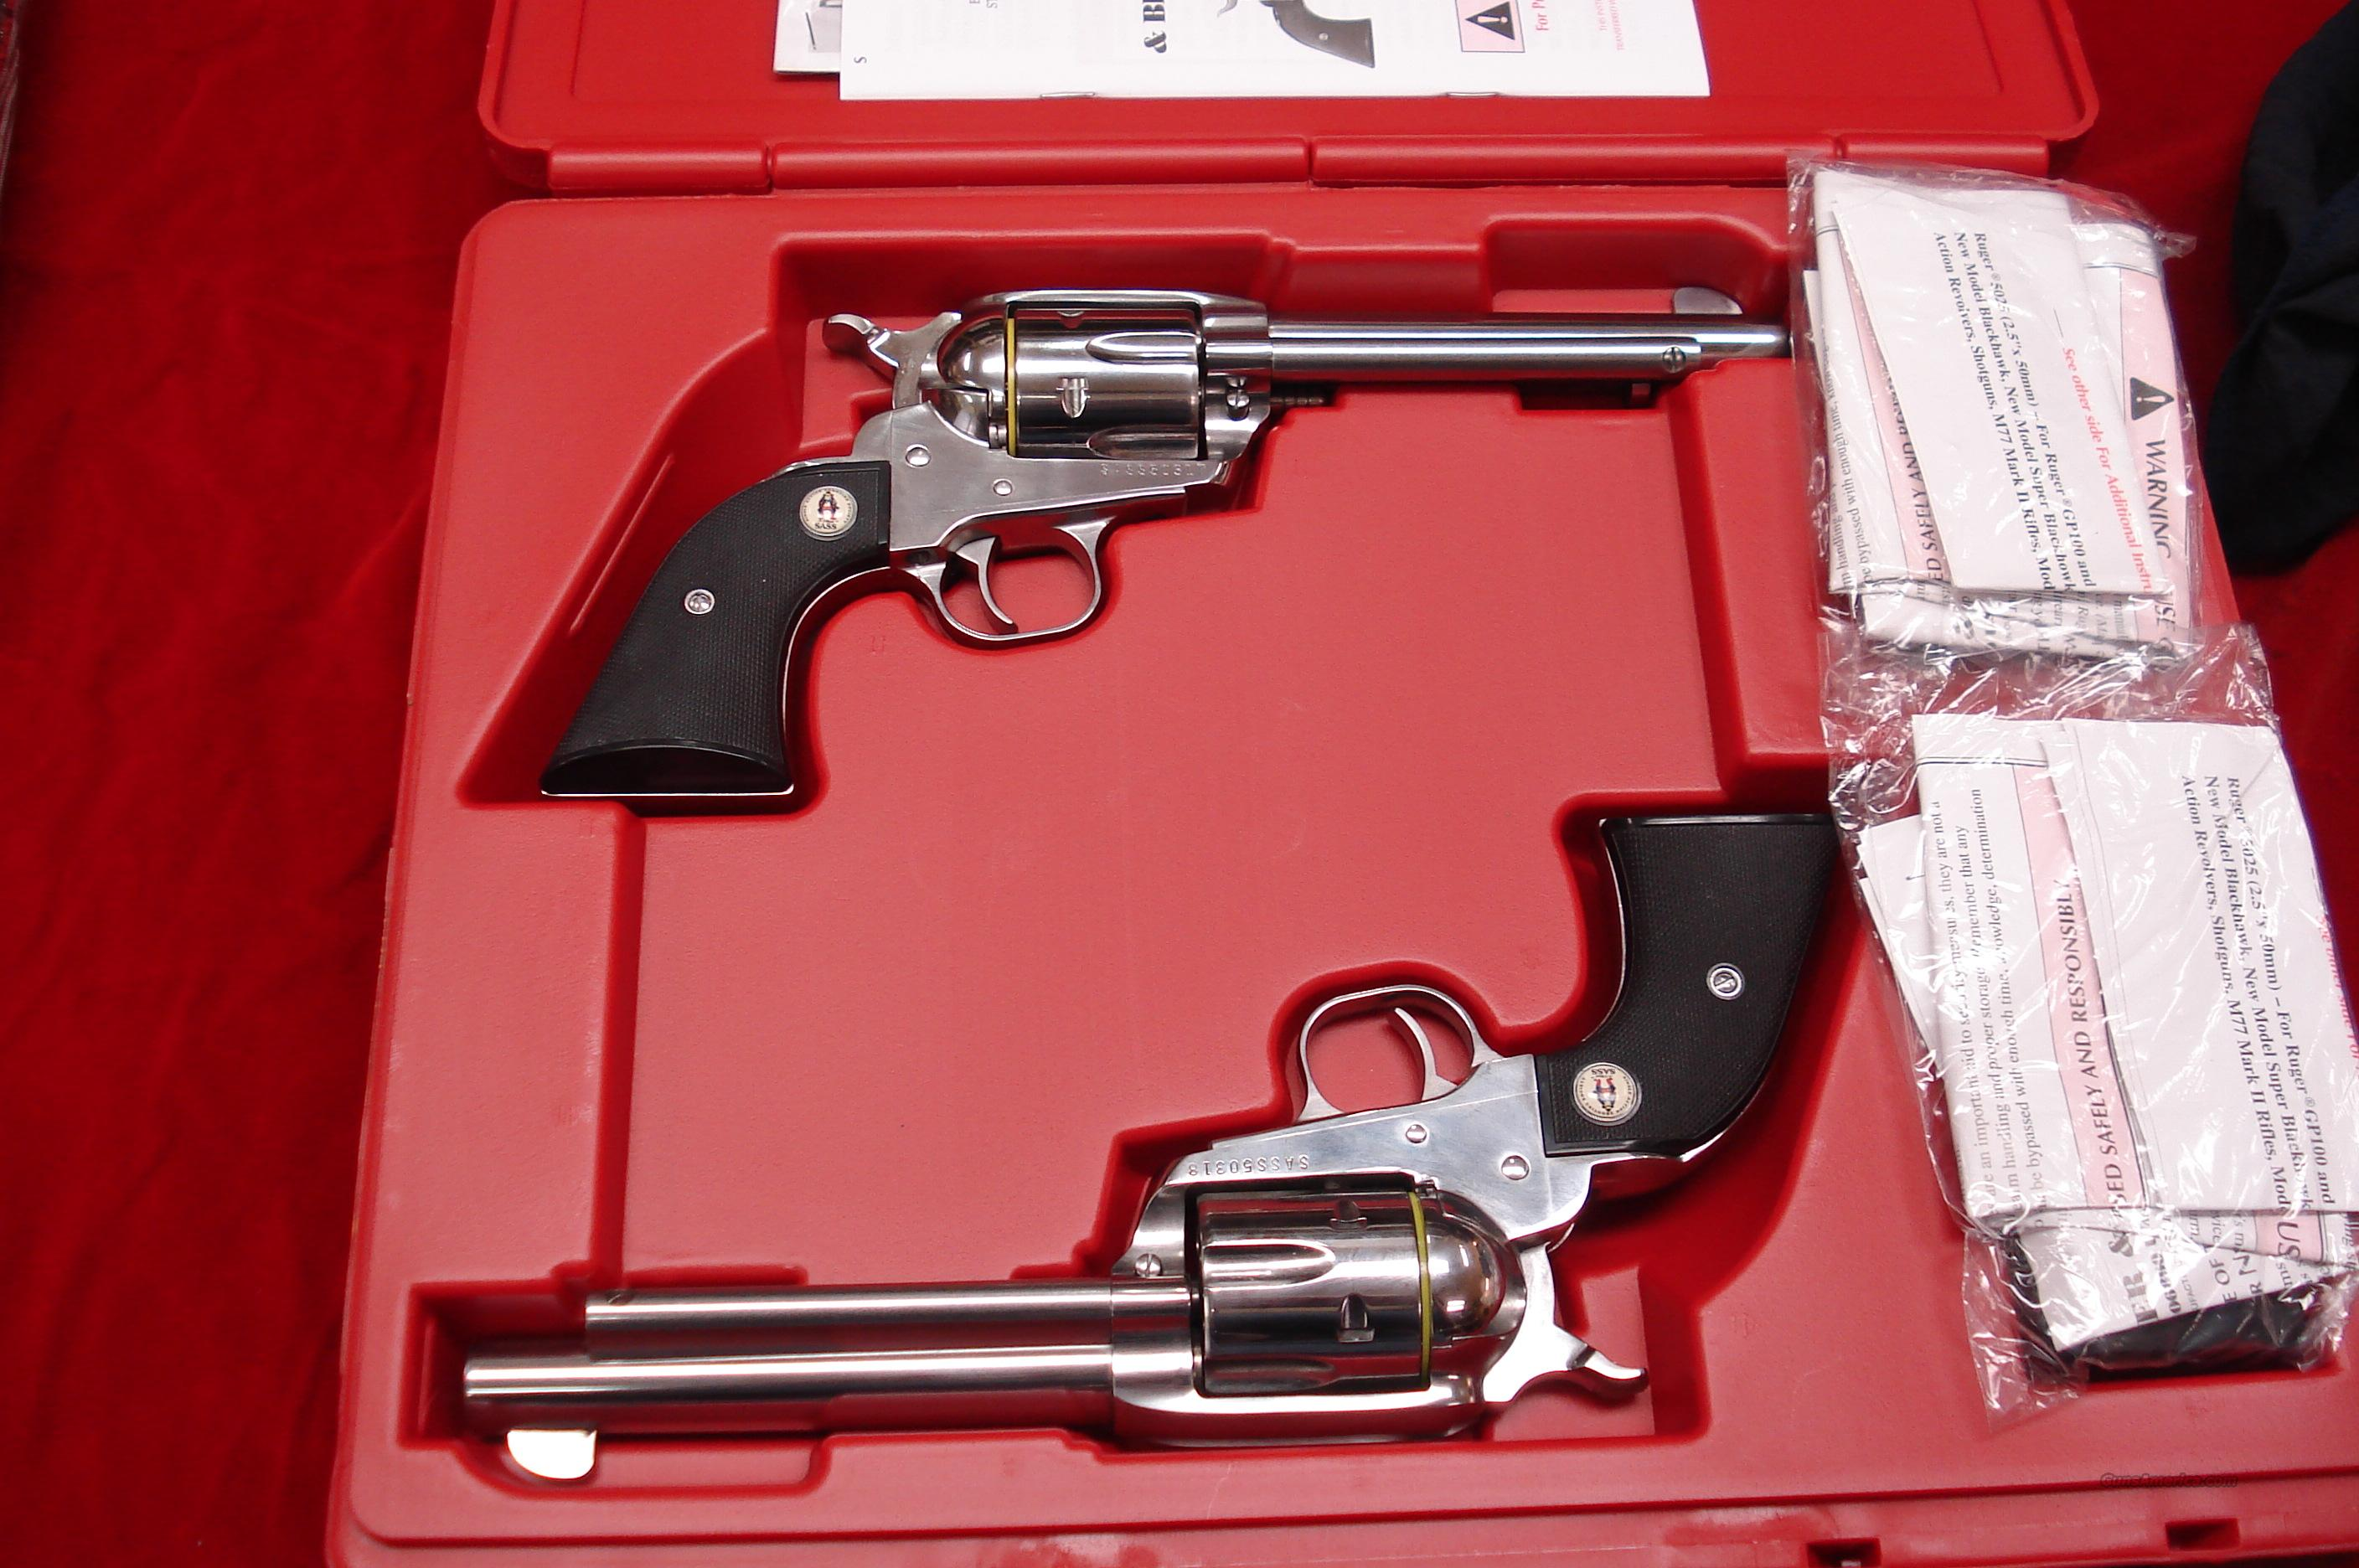 RUGER SASS VAQUERO MATCHED SET POLISHED STAINLESS .45 COLT CAL. NEW  (05134)   Guns > Pistols > Ruger Single Action Revolvers > Cowboy Action